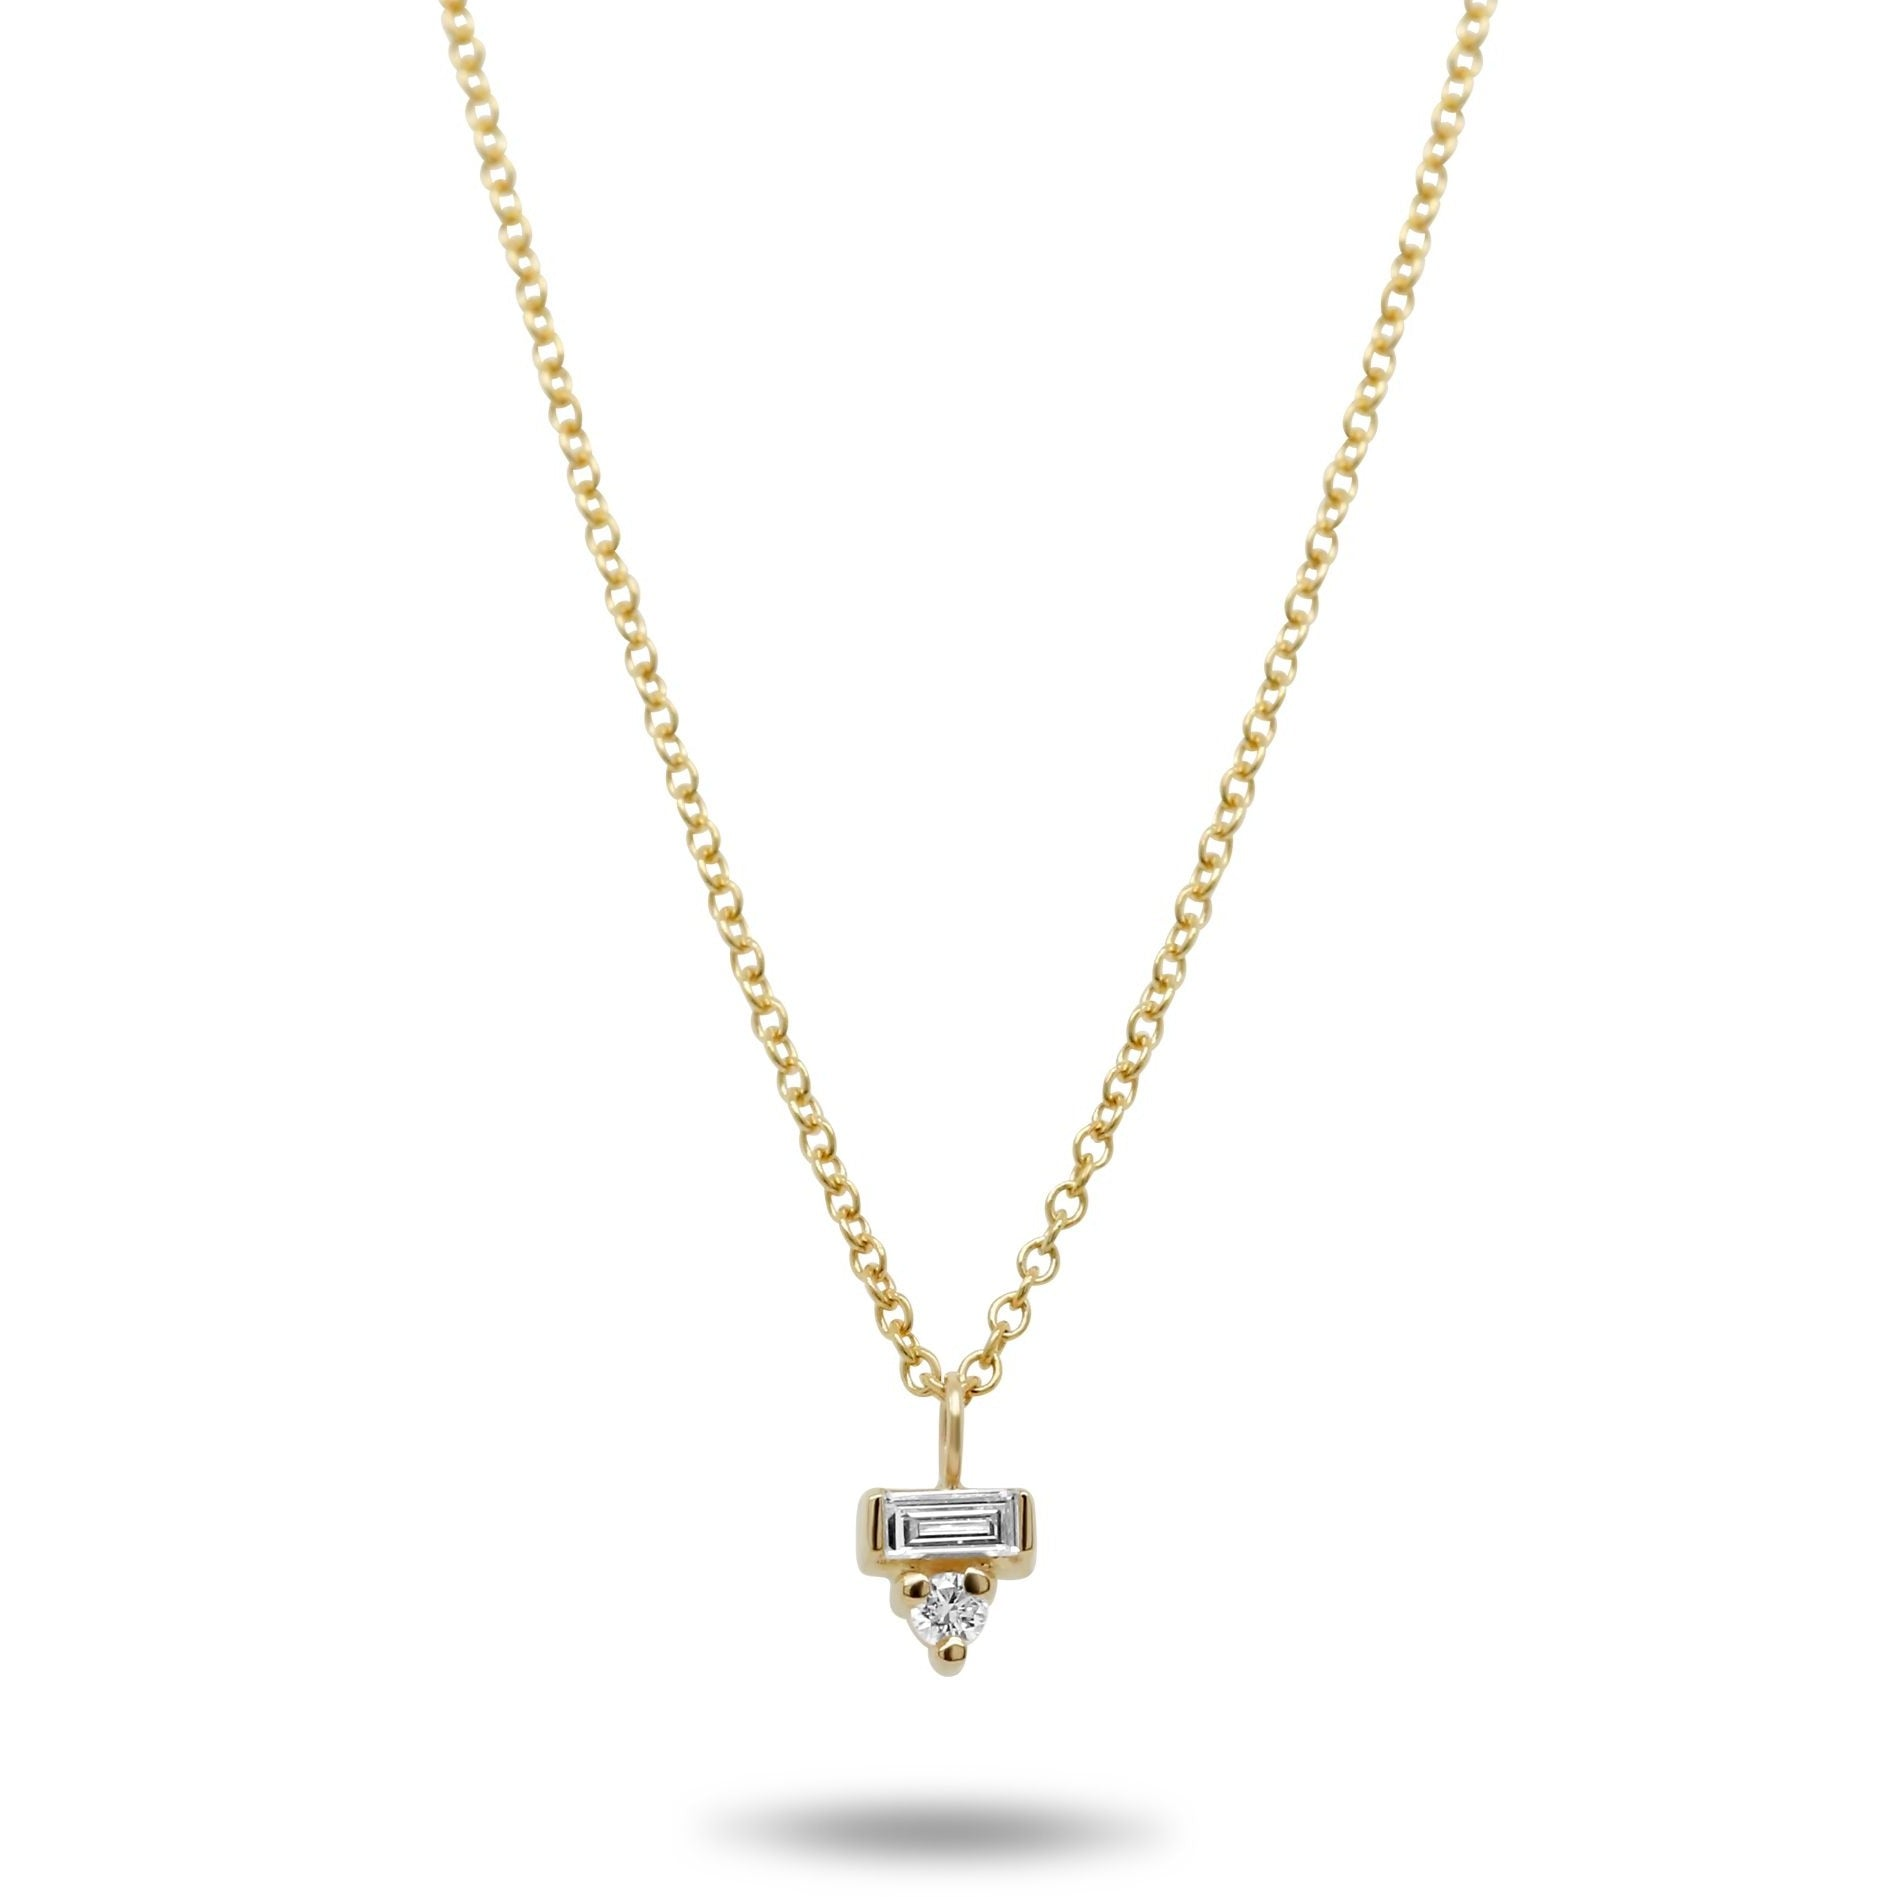 14k yellow gold baguette and round diamond dainty necklace 16in long chain under 1000